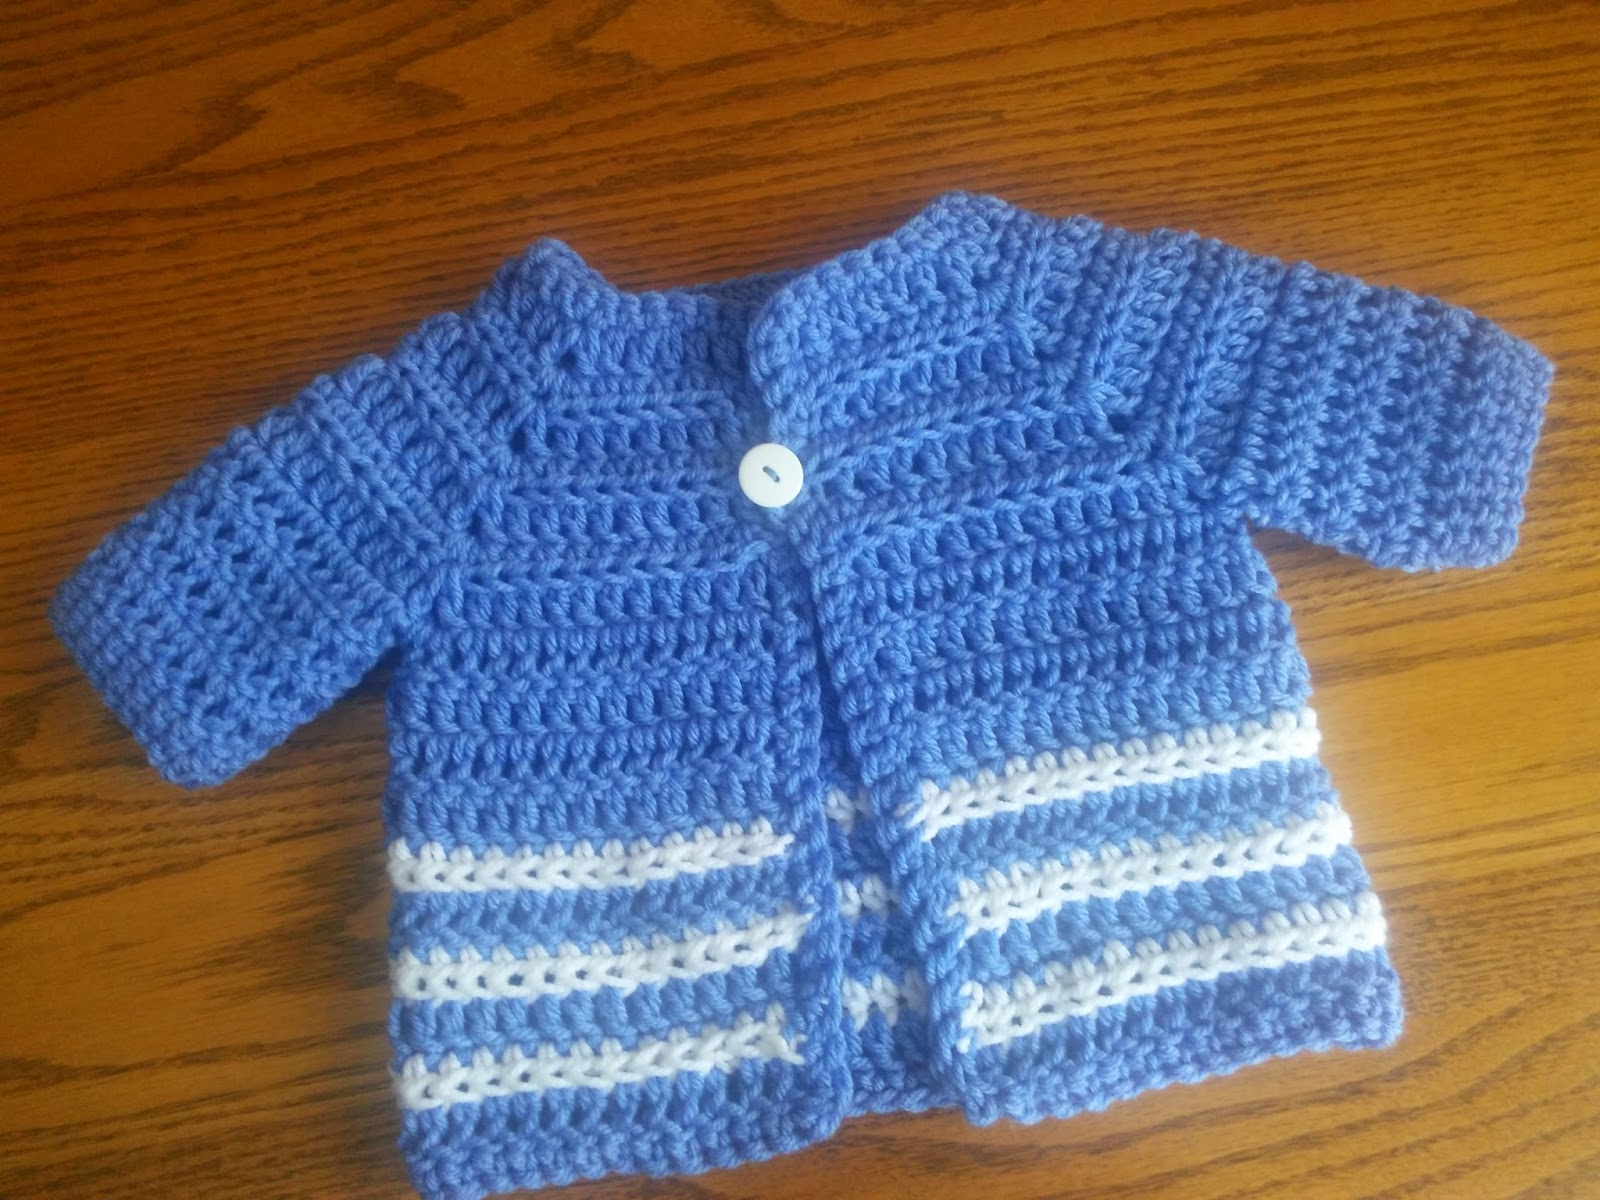 Craft Brag: Baby Boy Crochet Sweater - Pattern